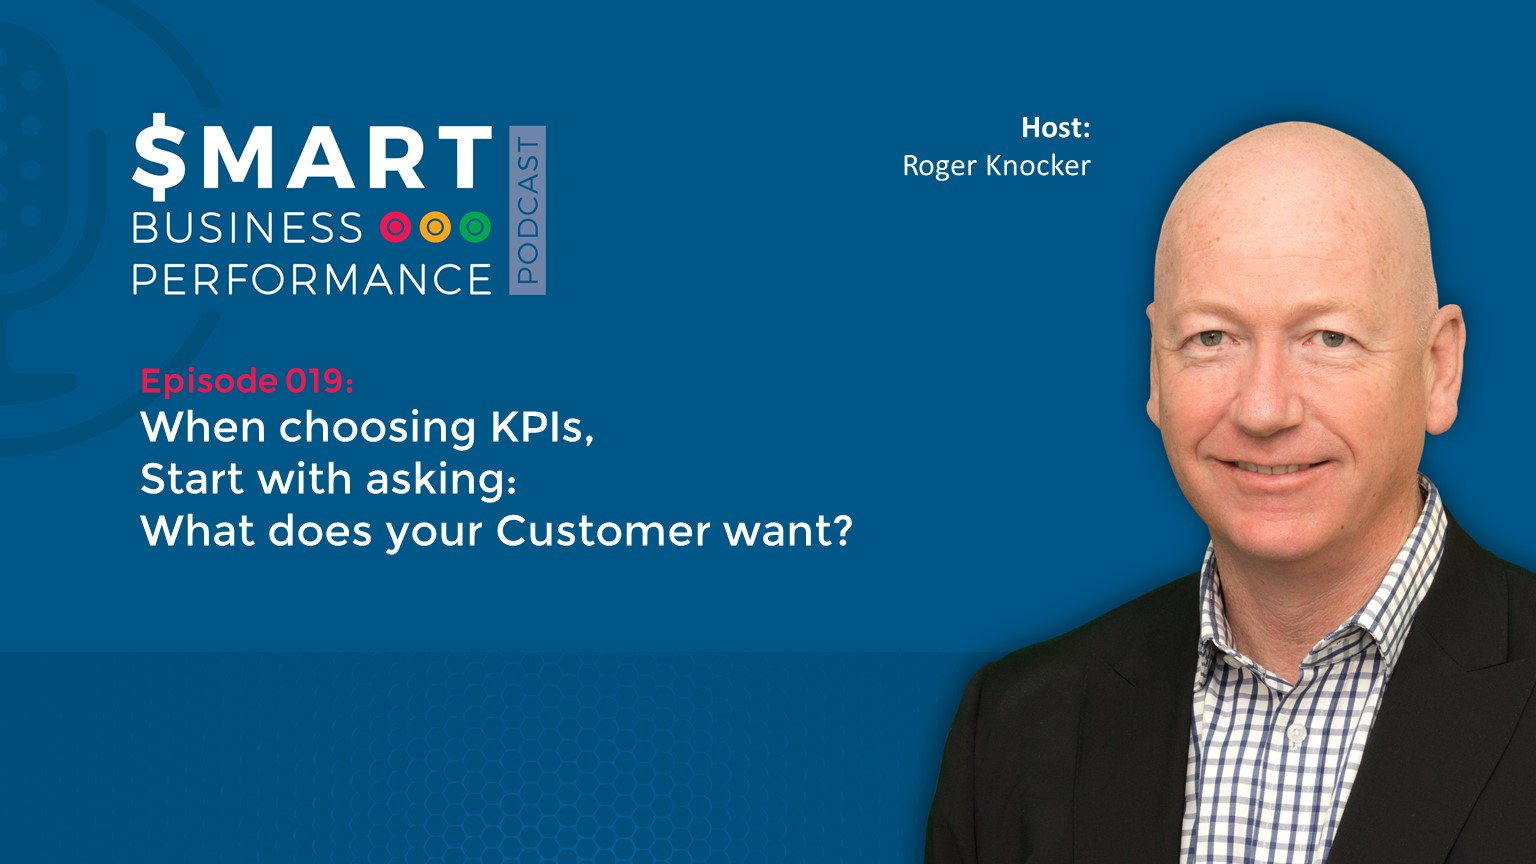 SBP019 When choosing KPIs start by asking what your Customer wants